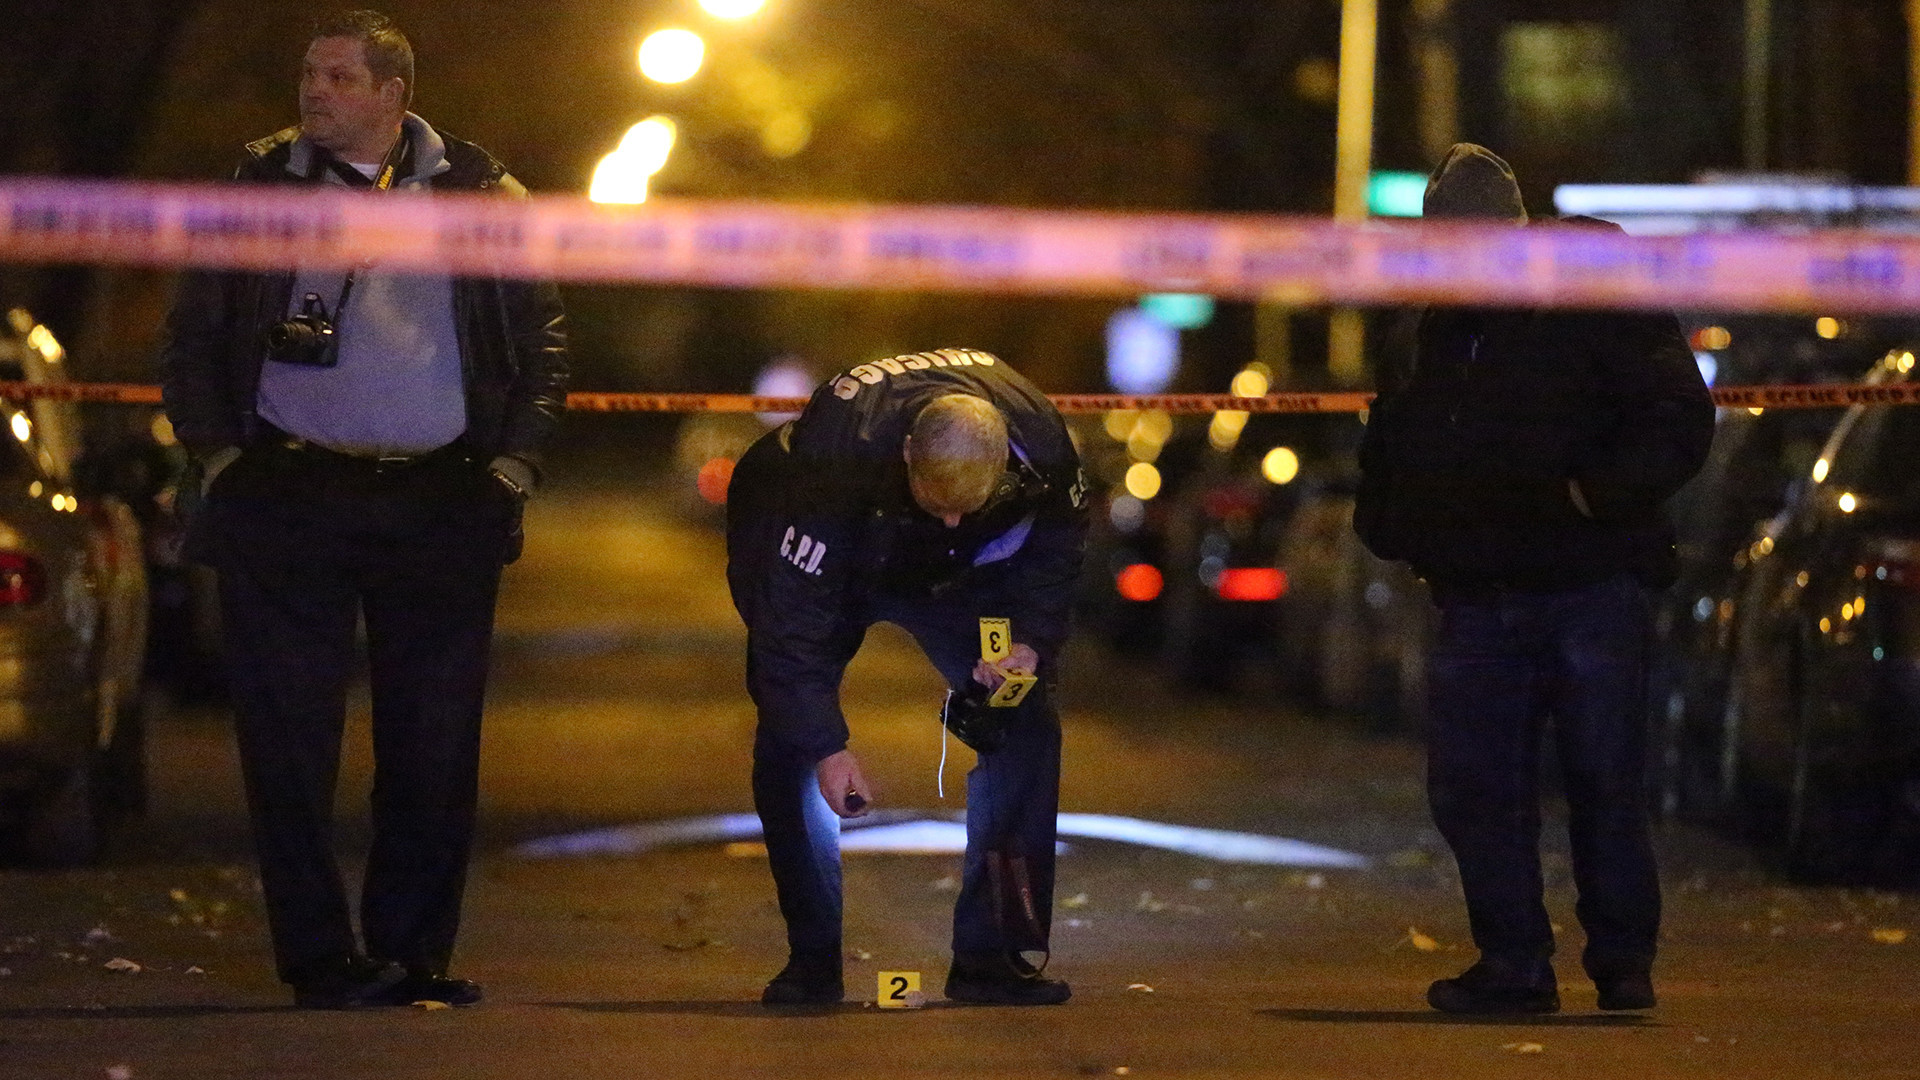 Up to 600 Police Officers Will Be Sent On Chicago Streets…Will this Help Decrease the Violence in the City?